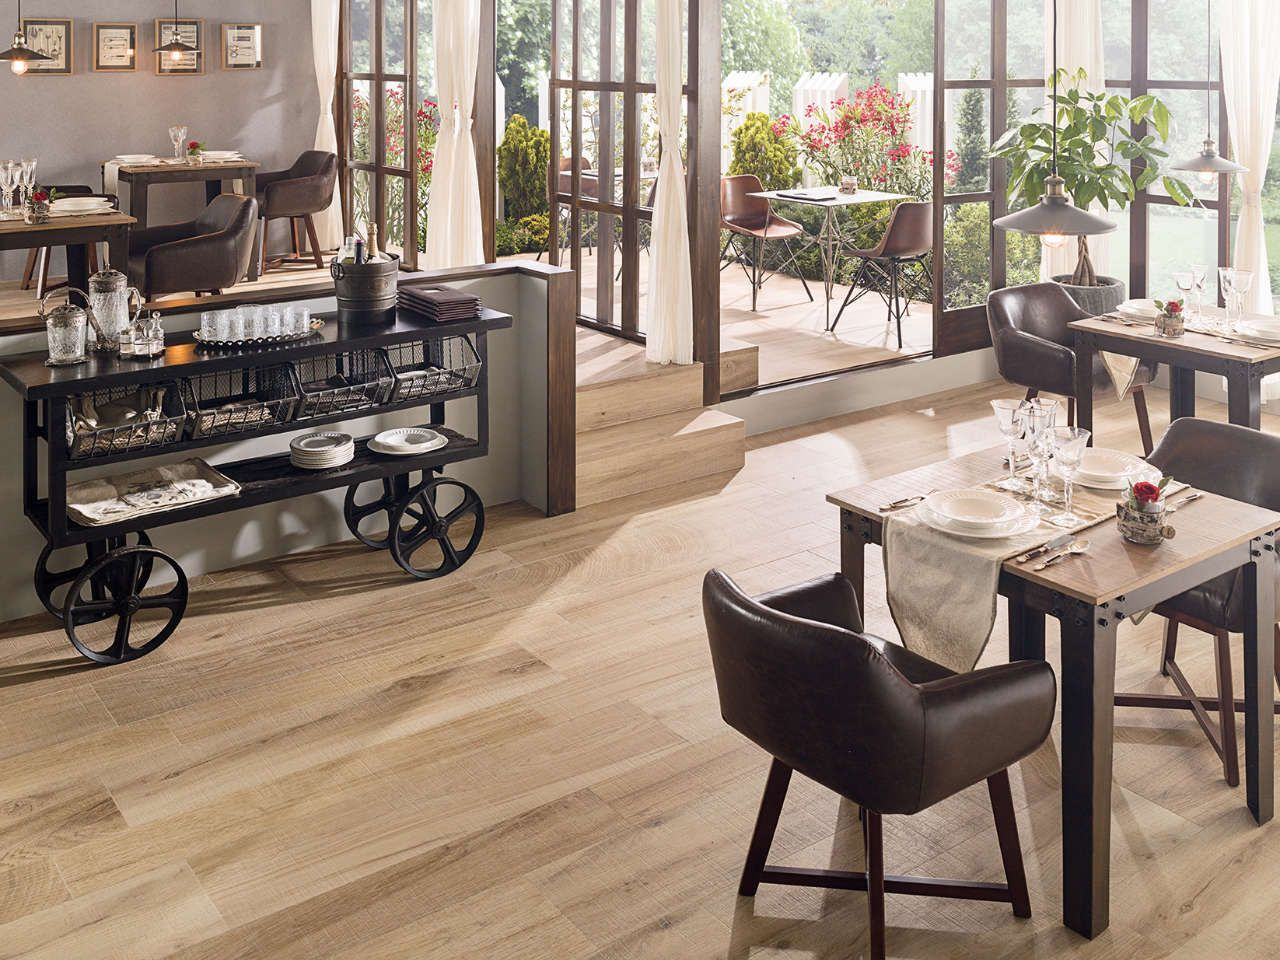 Carrelage Imitation Parquet Porcelanosa Collection Carrelage Par Ker Porcelanosa Ascot Arce 19